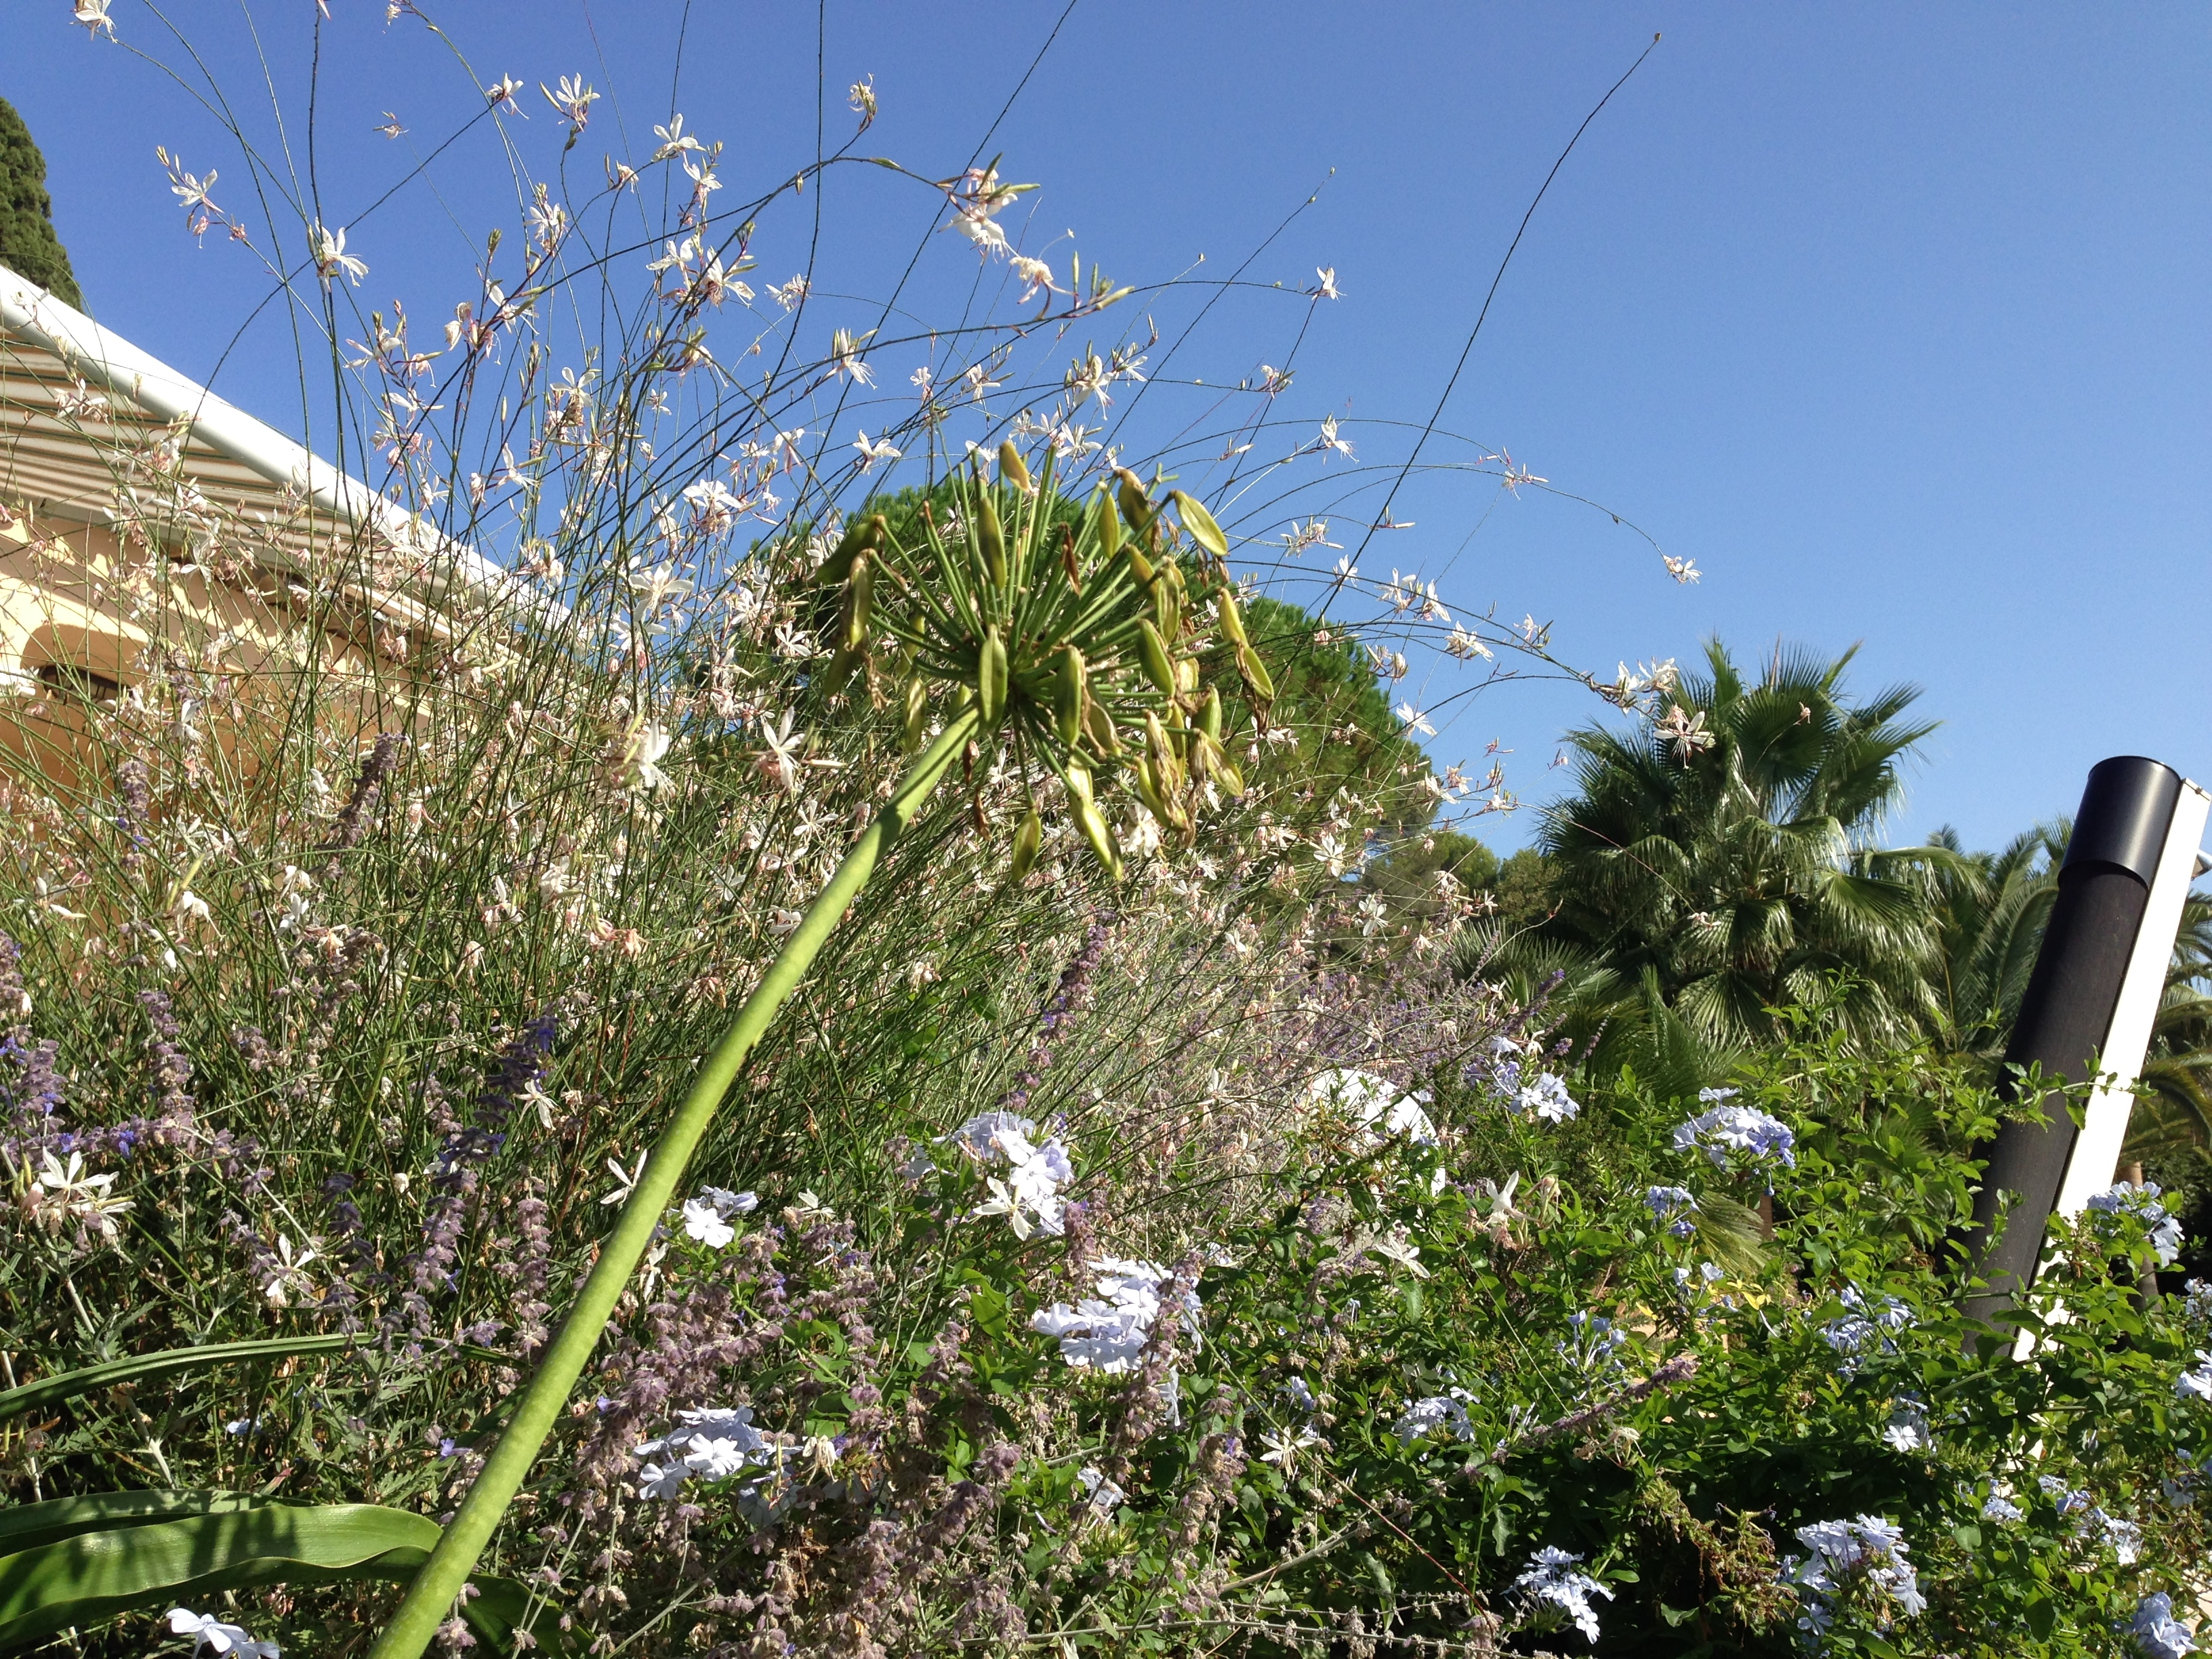 Gaura and Agapanthus dancing to the same rhythm in the light breeze